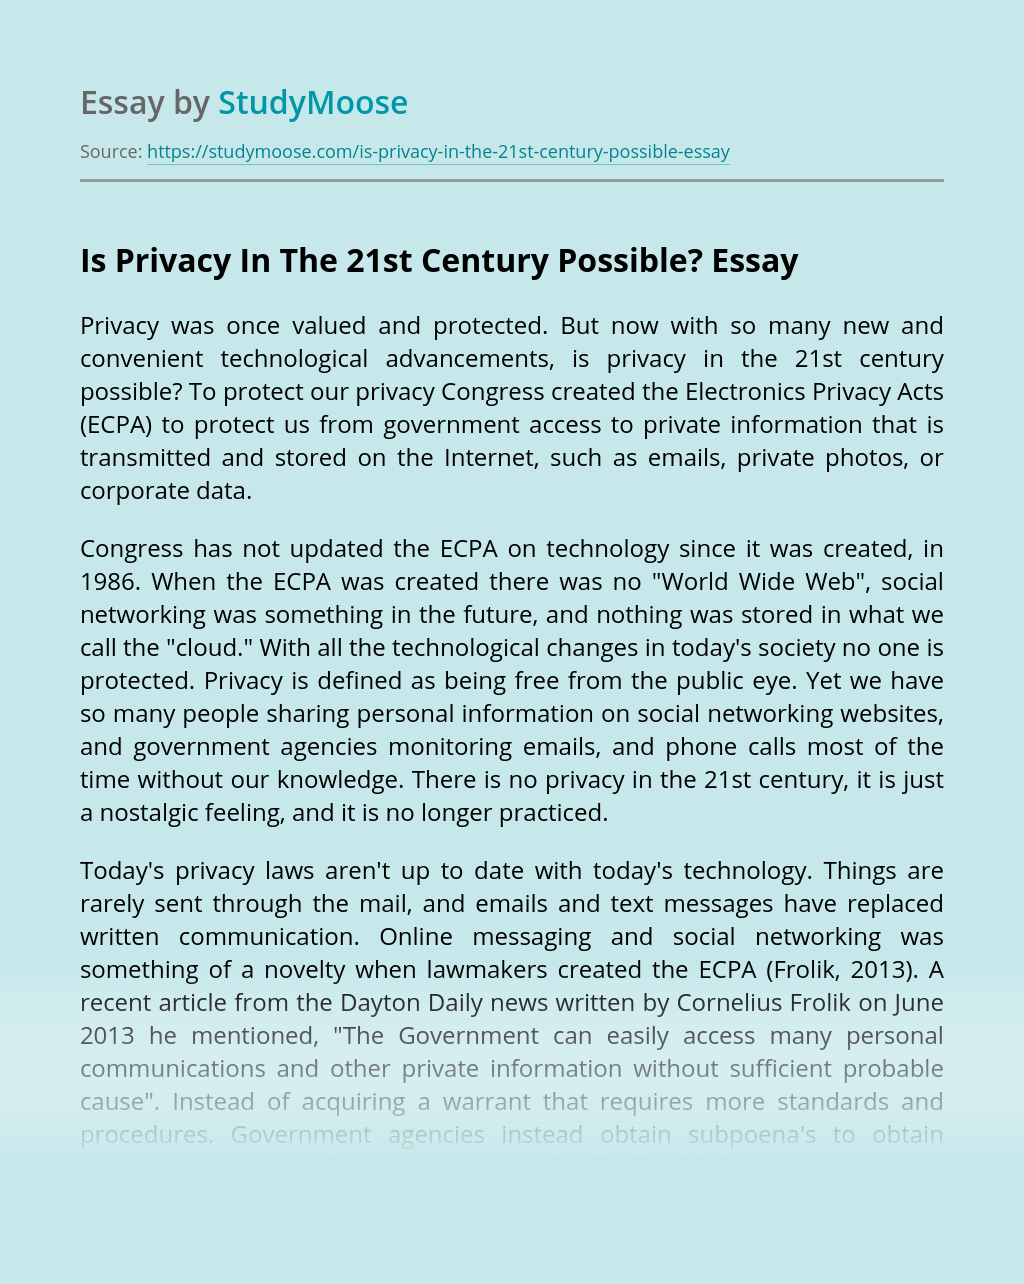 Is Privacy In The 21st Century Possible?